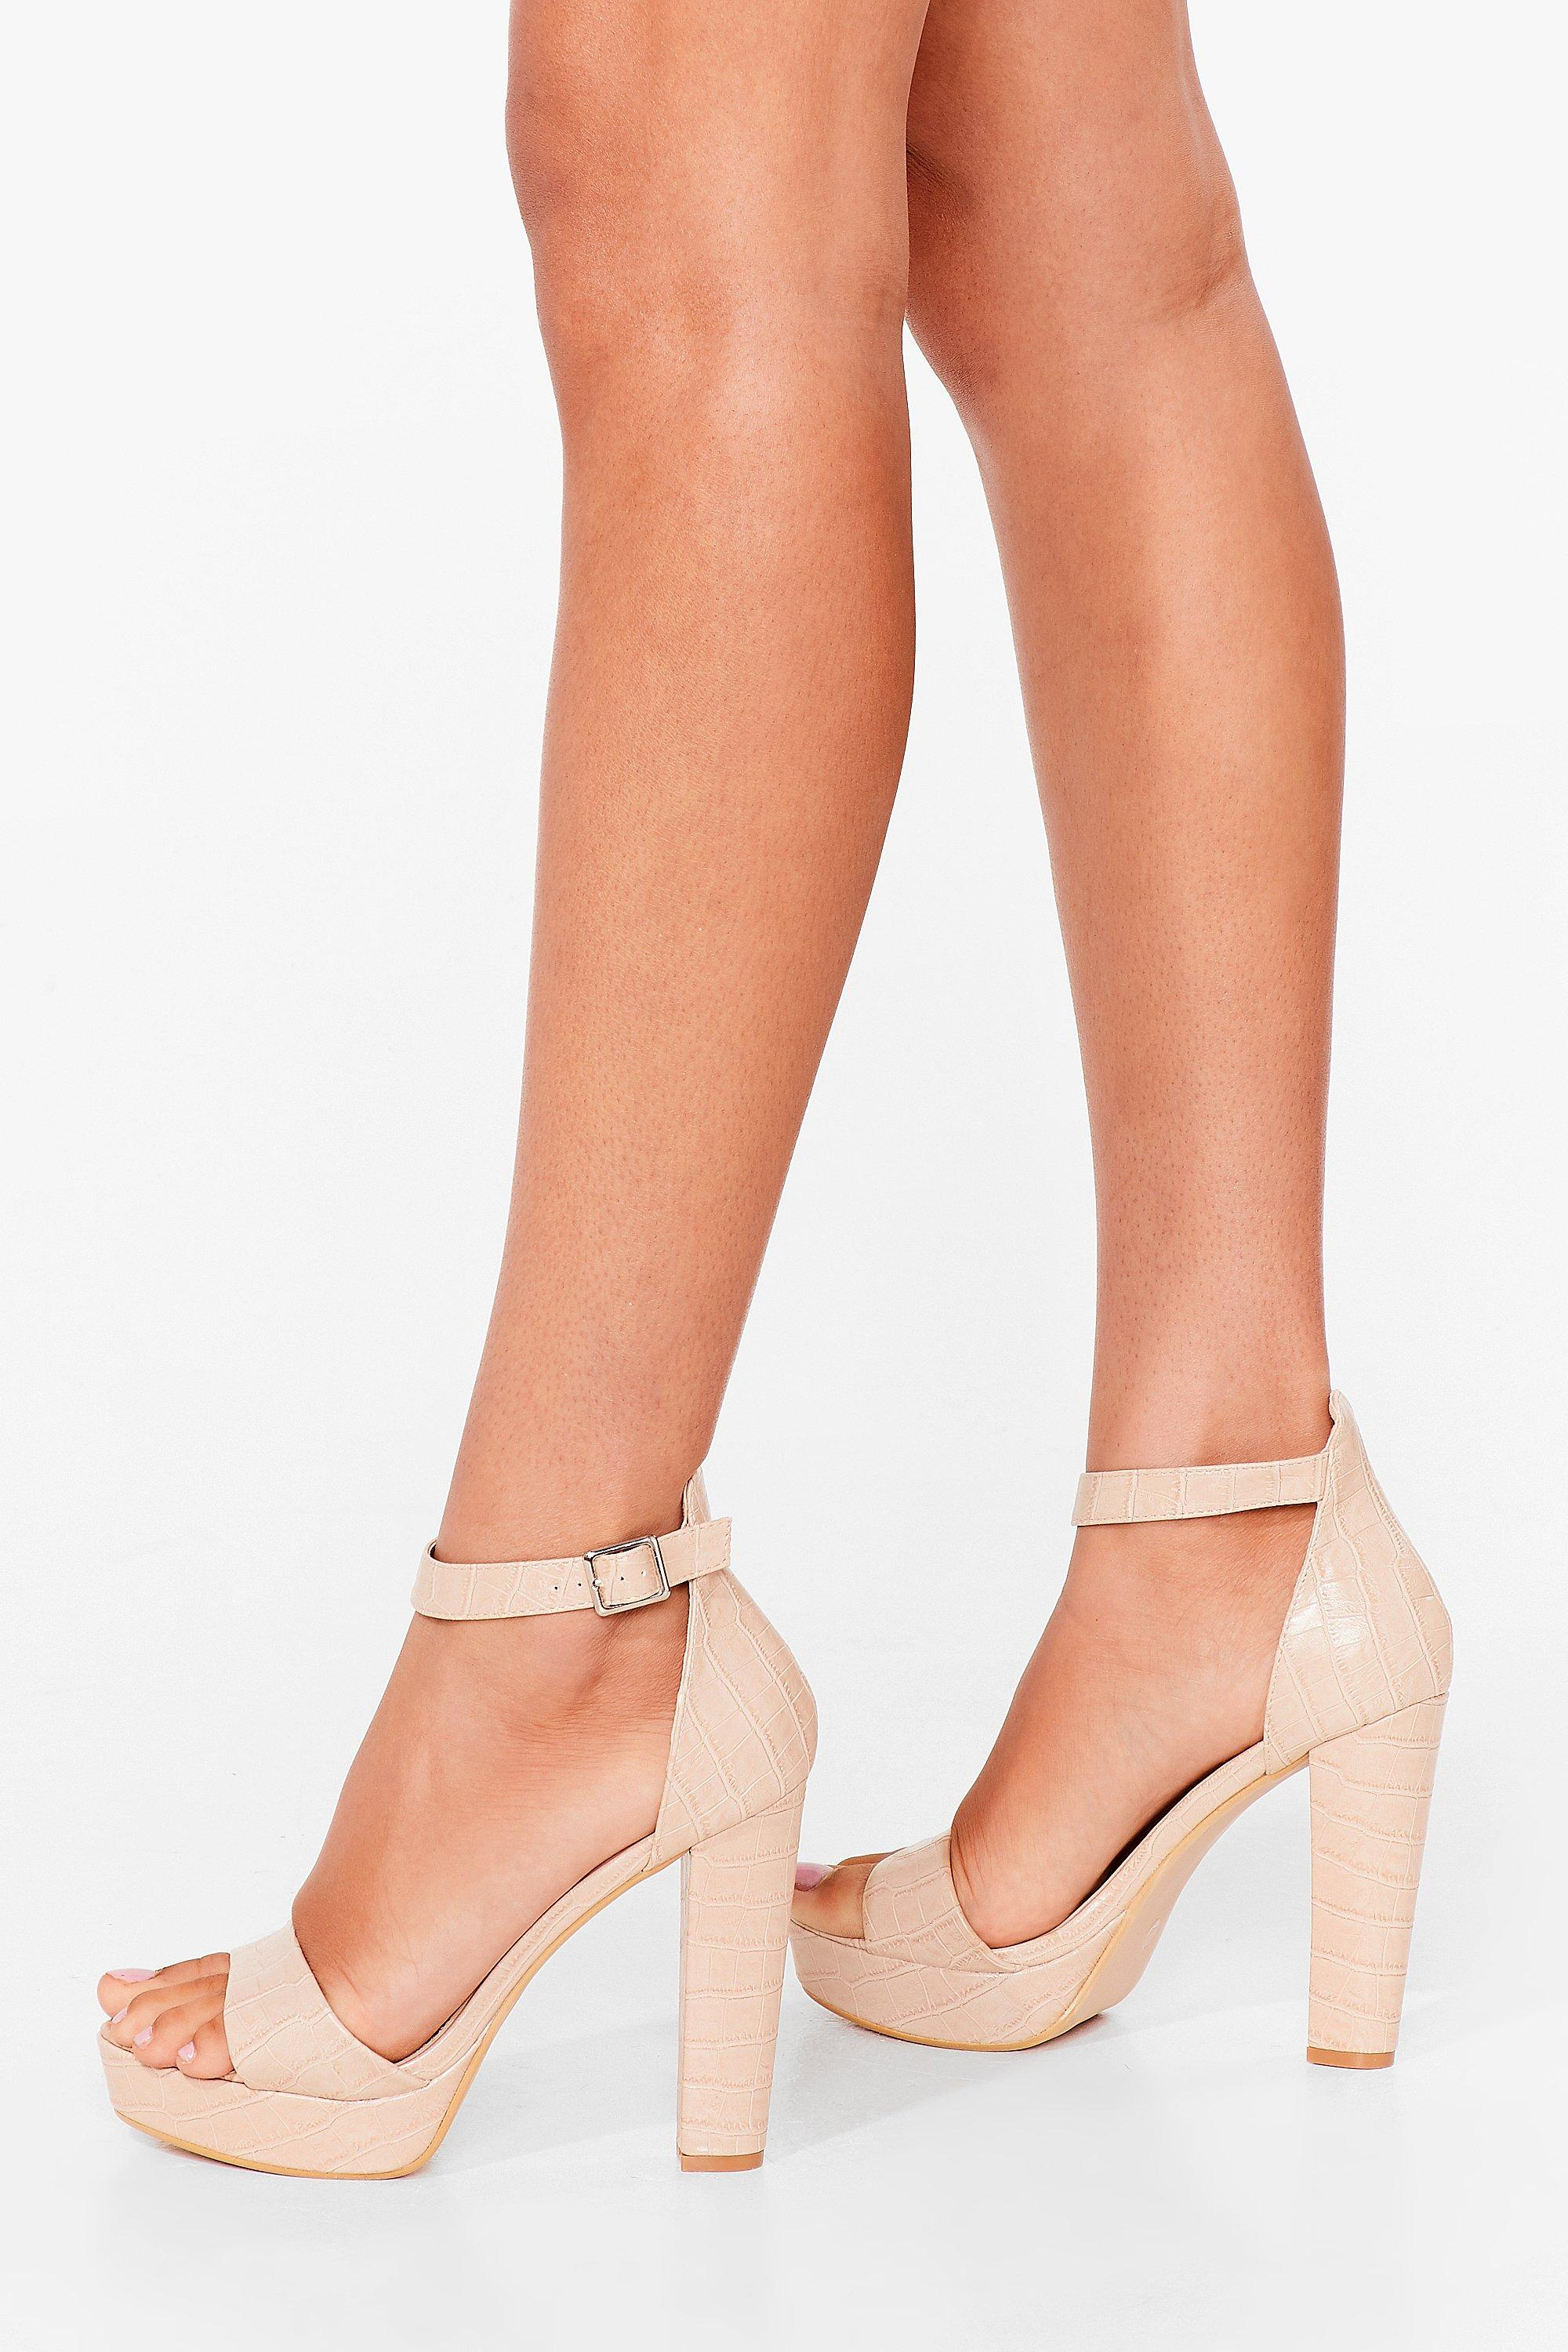 Image of Womens Crazy in Love Faux Leather Platform Heels - Beige